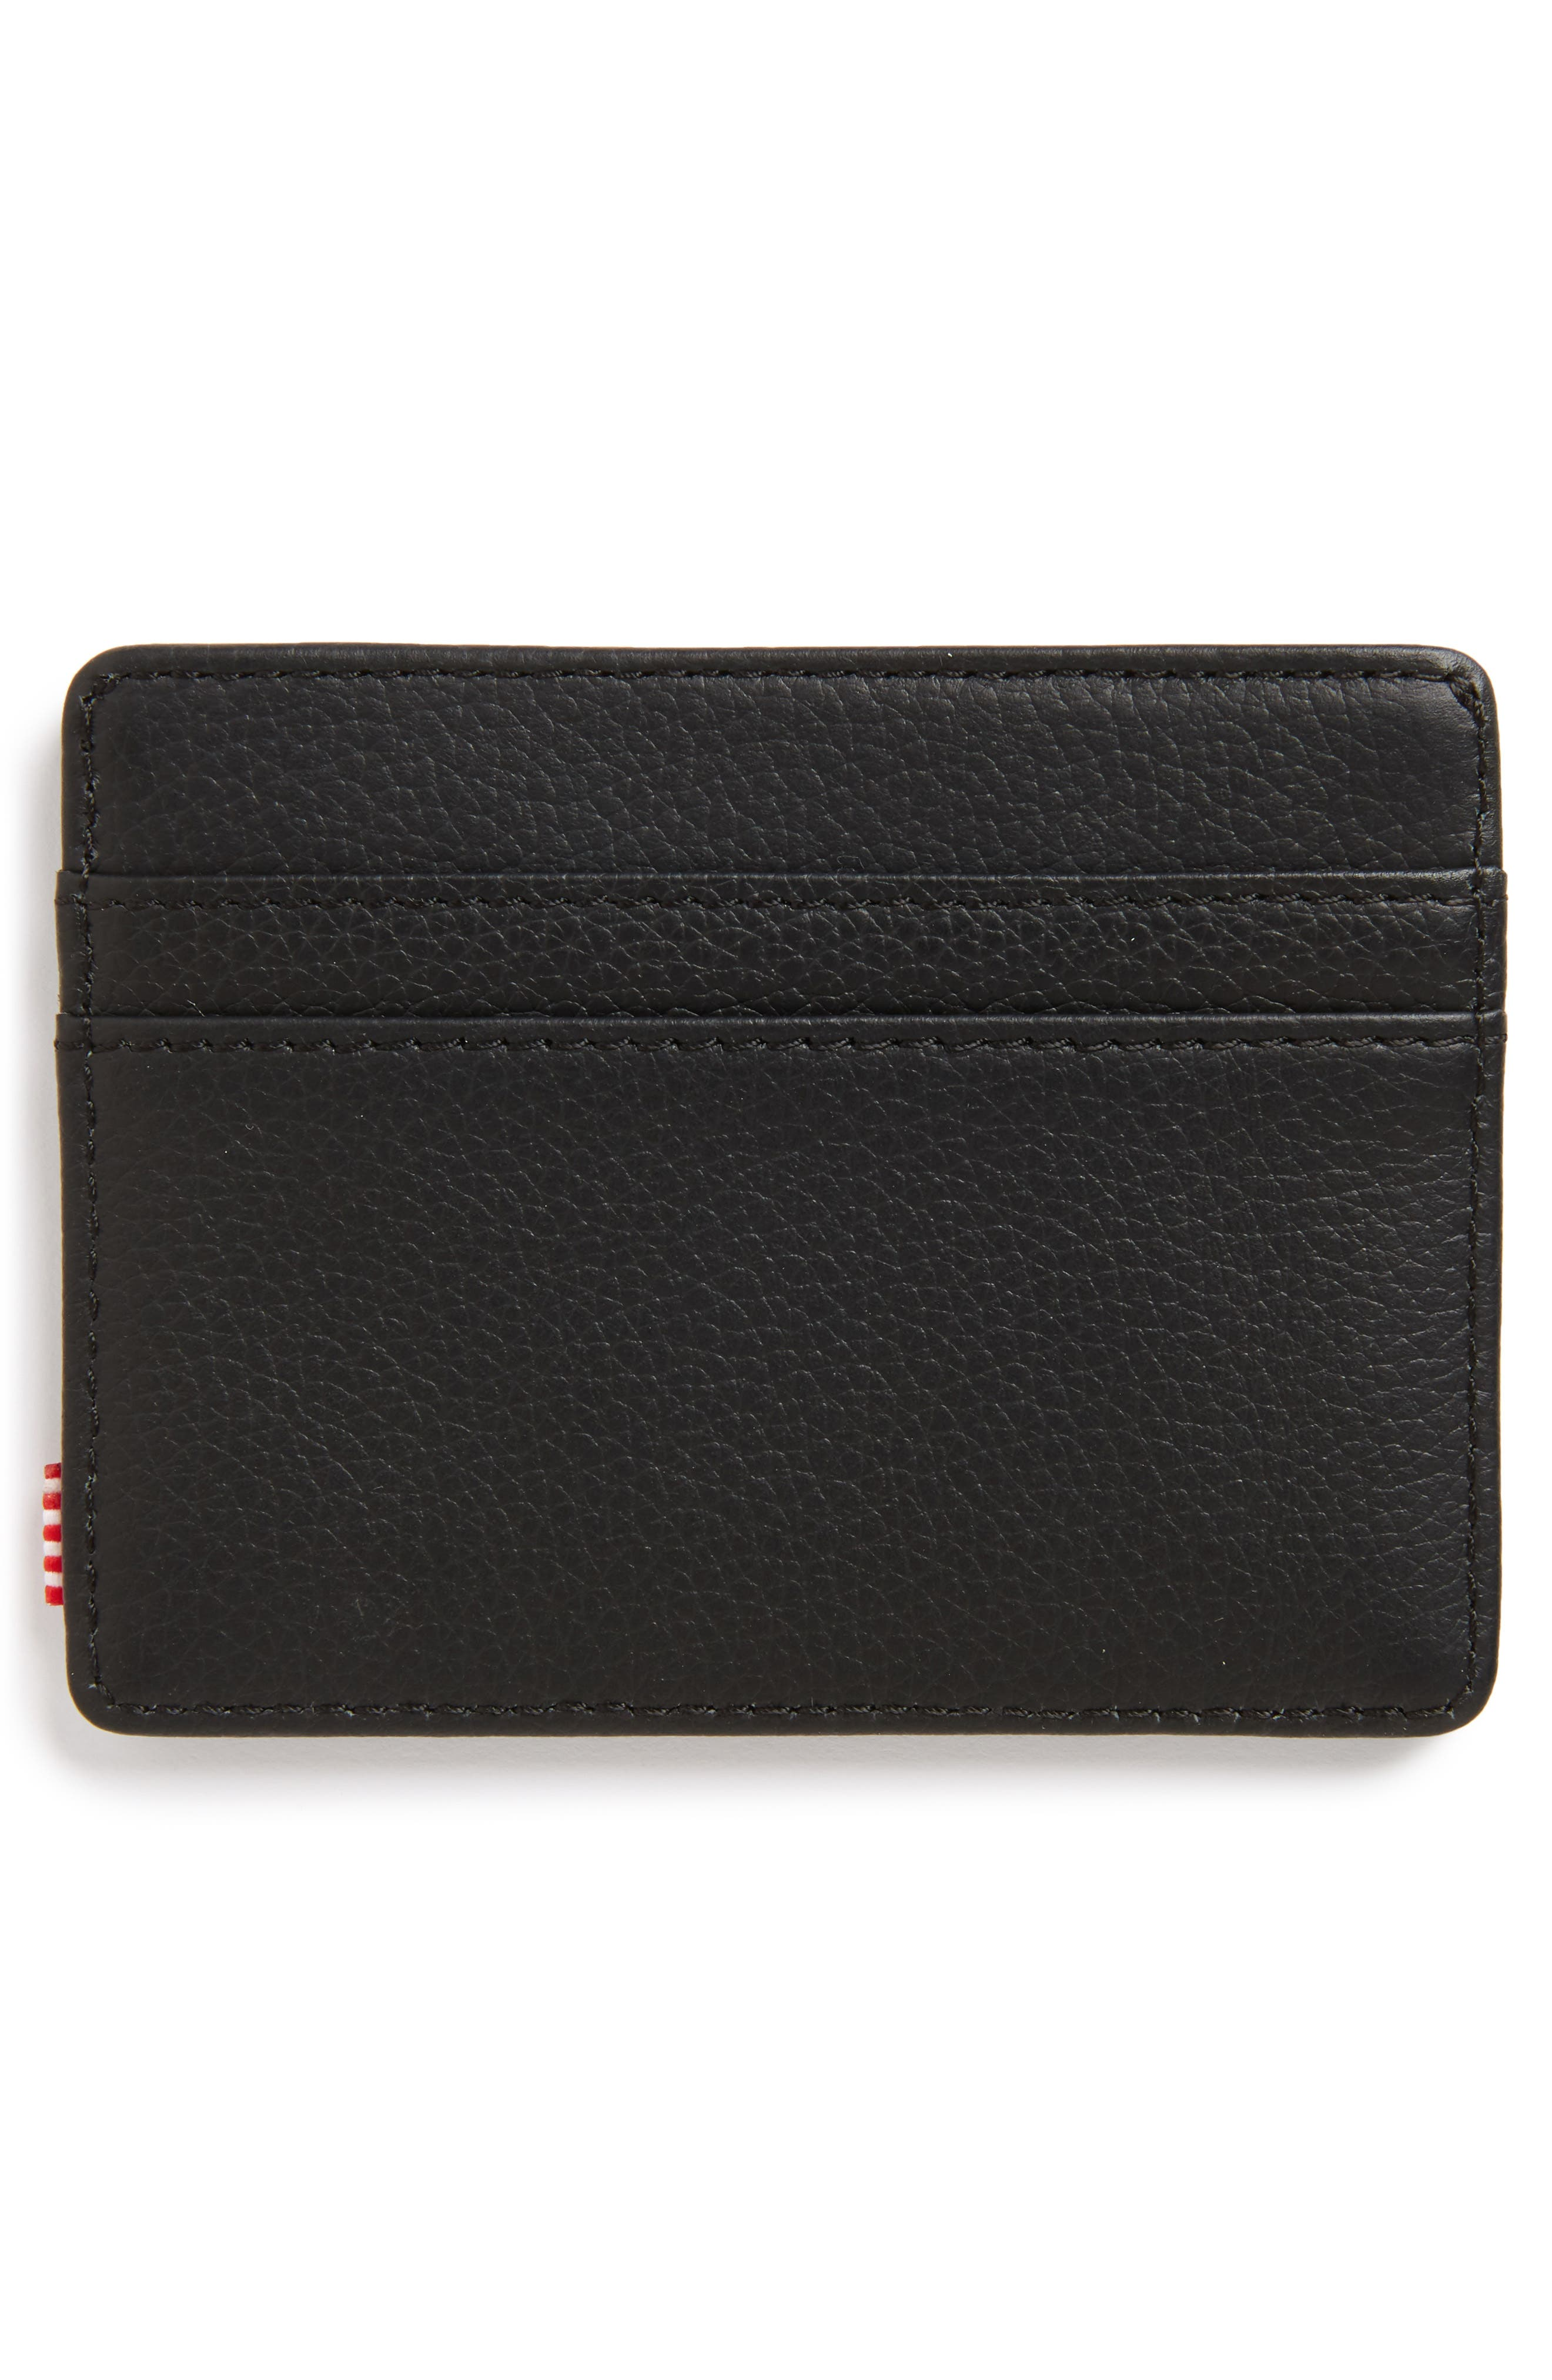 Charlie Leather Card Case,                             Alternate thumbnail 2, color,                             Black Leather